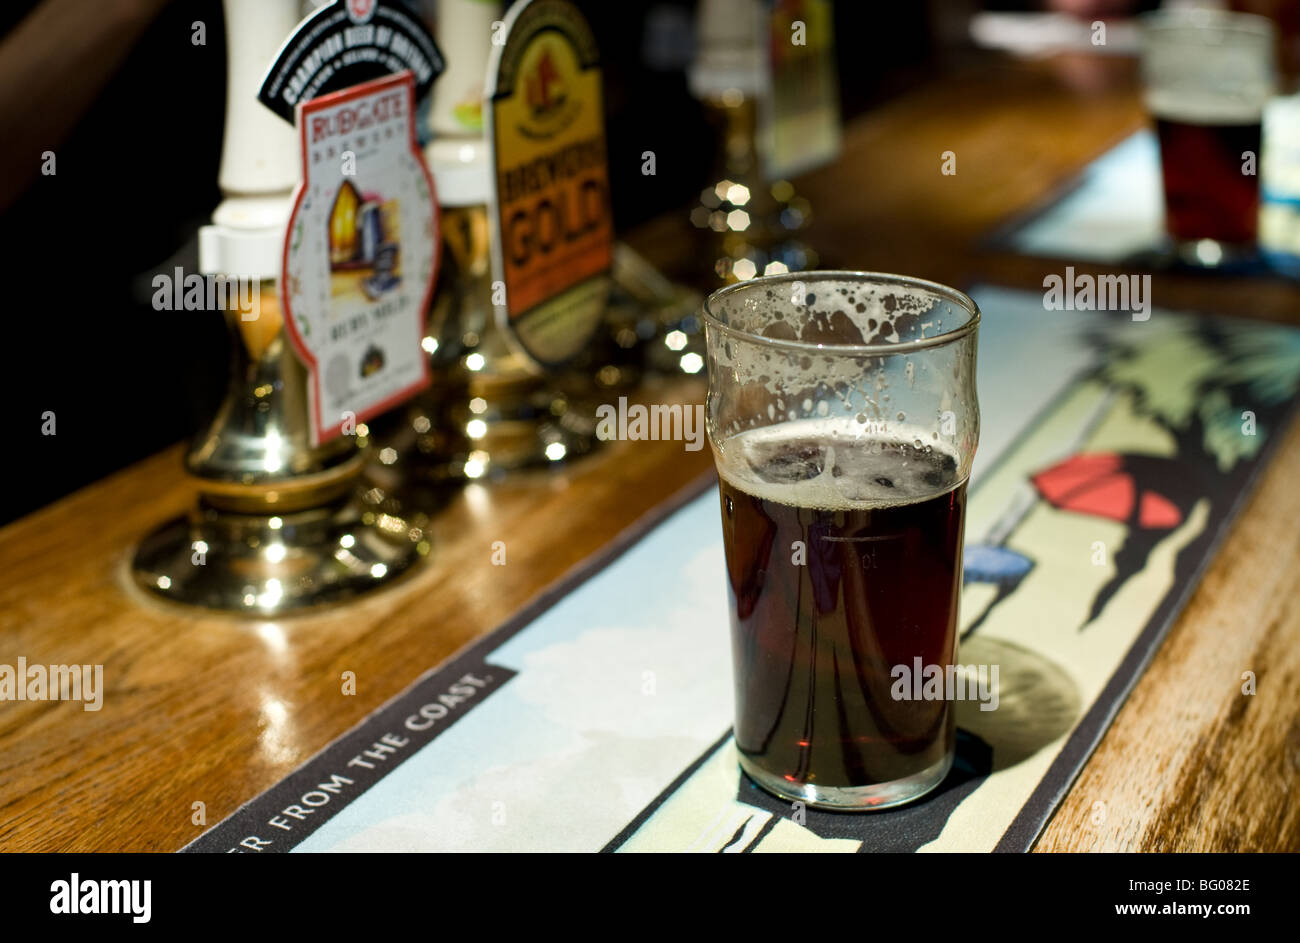 A pint of real ale on the bar of a public house in Essex.  Photo by Gordon Scammell - Stock Image